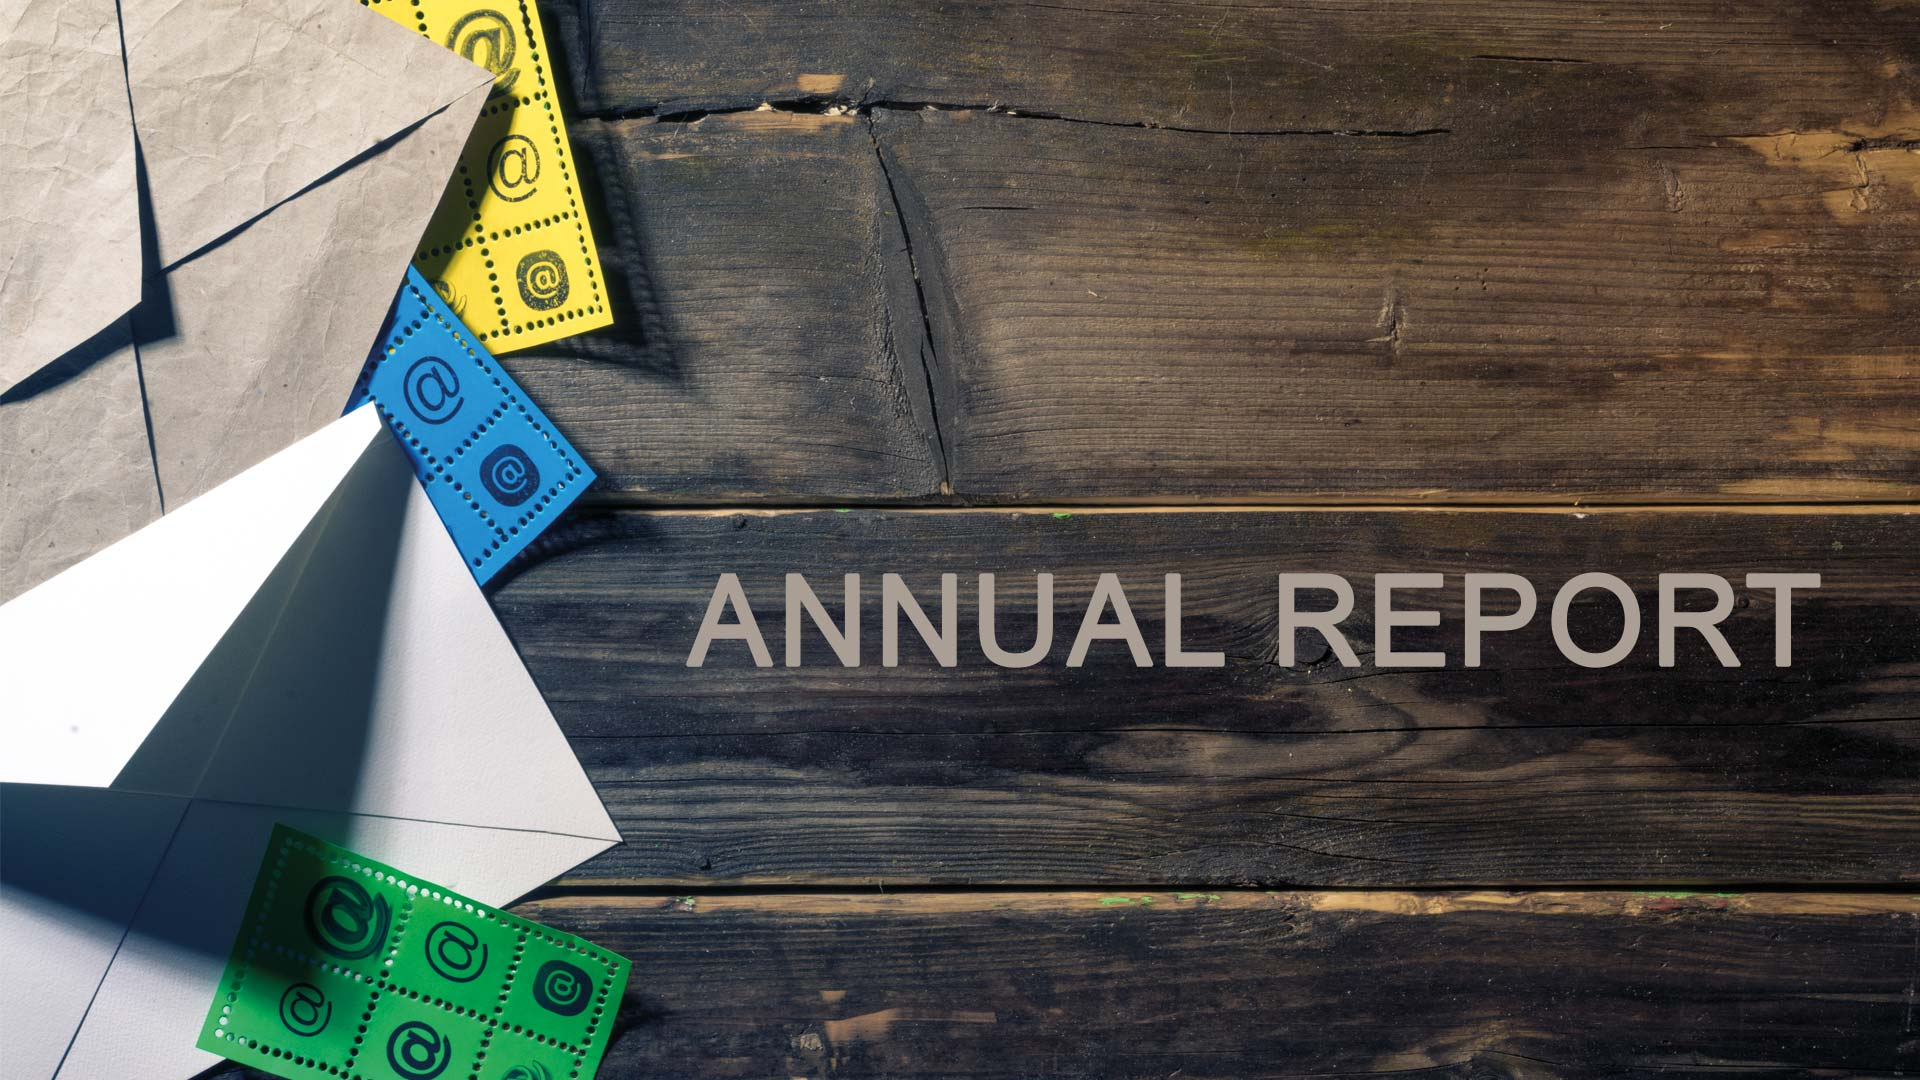 Annual Report Tearfund Germany Charitable Organization